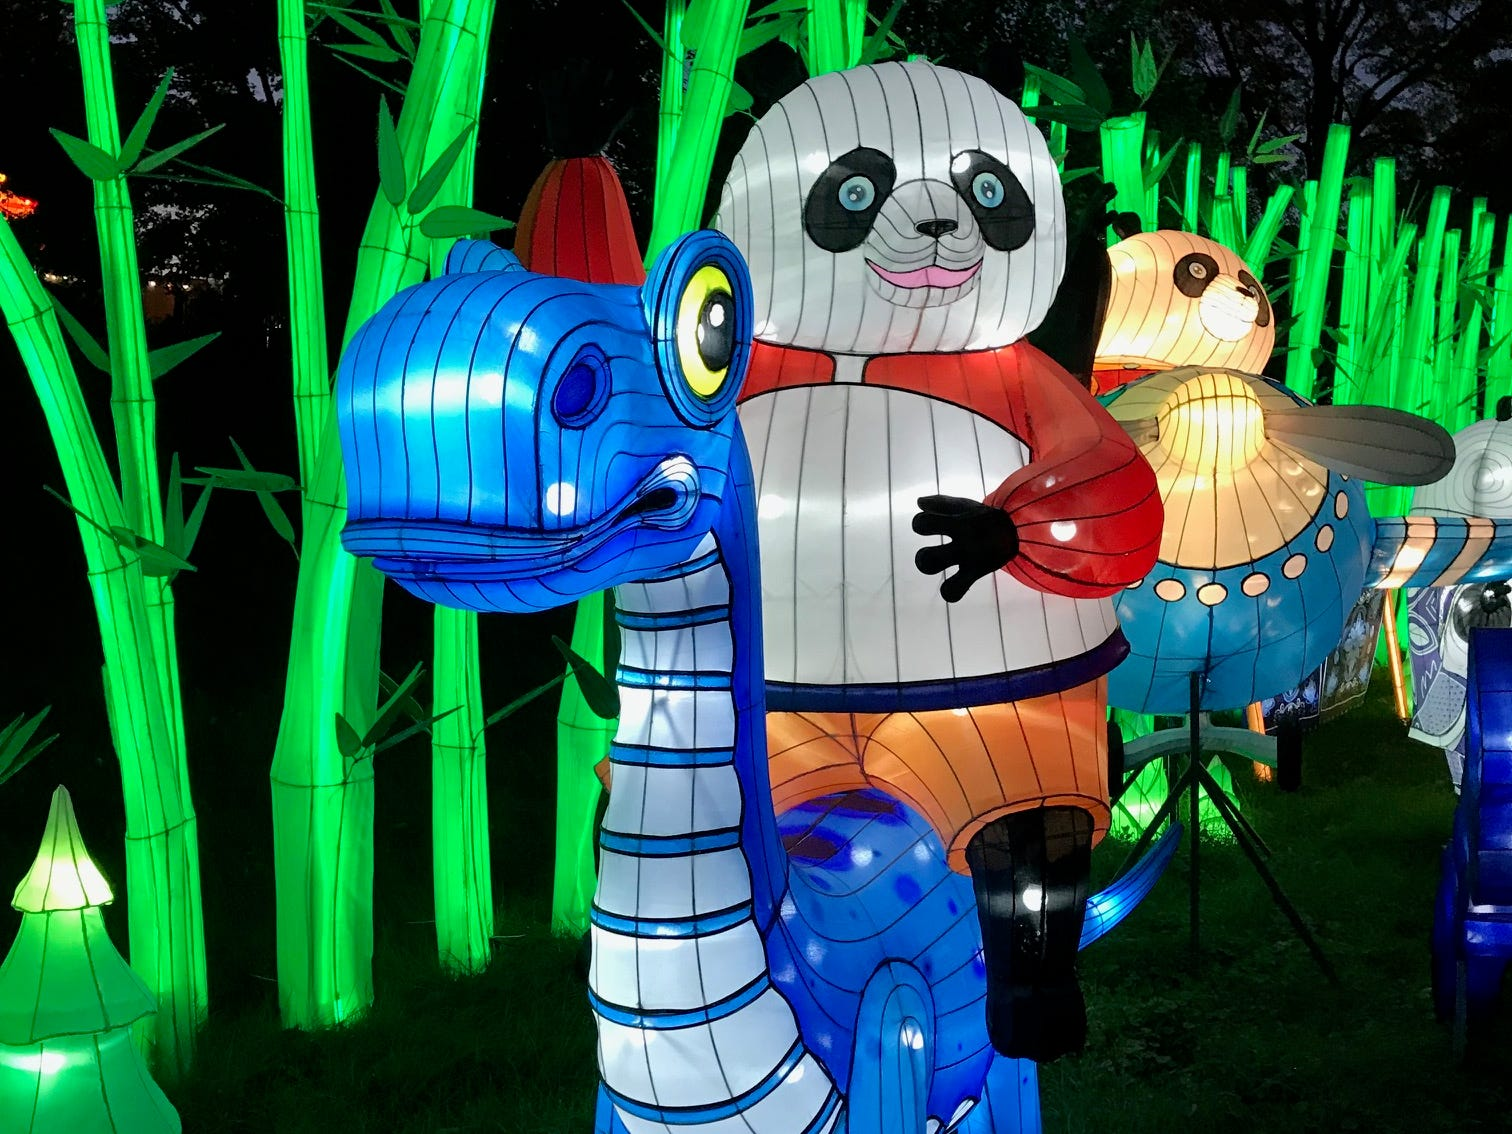 The pandas at the China Lights lantern festival also like to ride on dinosaurs. Since the festival's theme in 2018 is Panda-Mania, there was a heavy dose of panda lanterns.